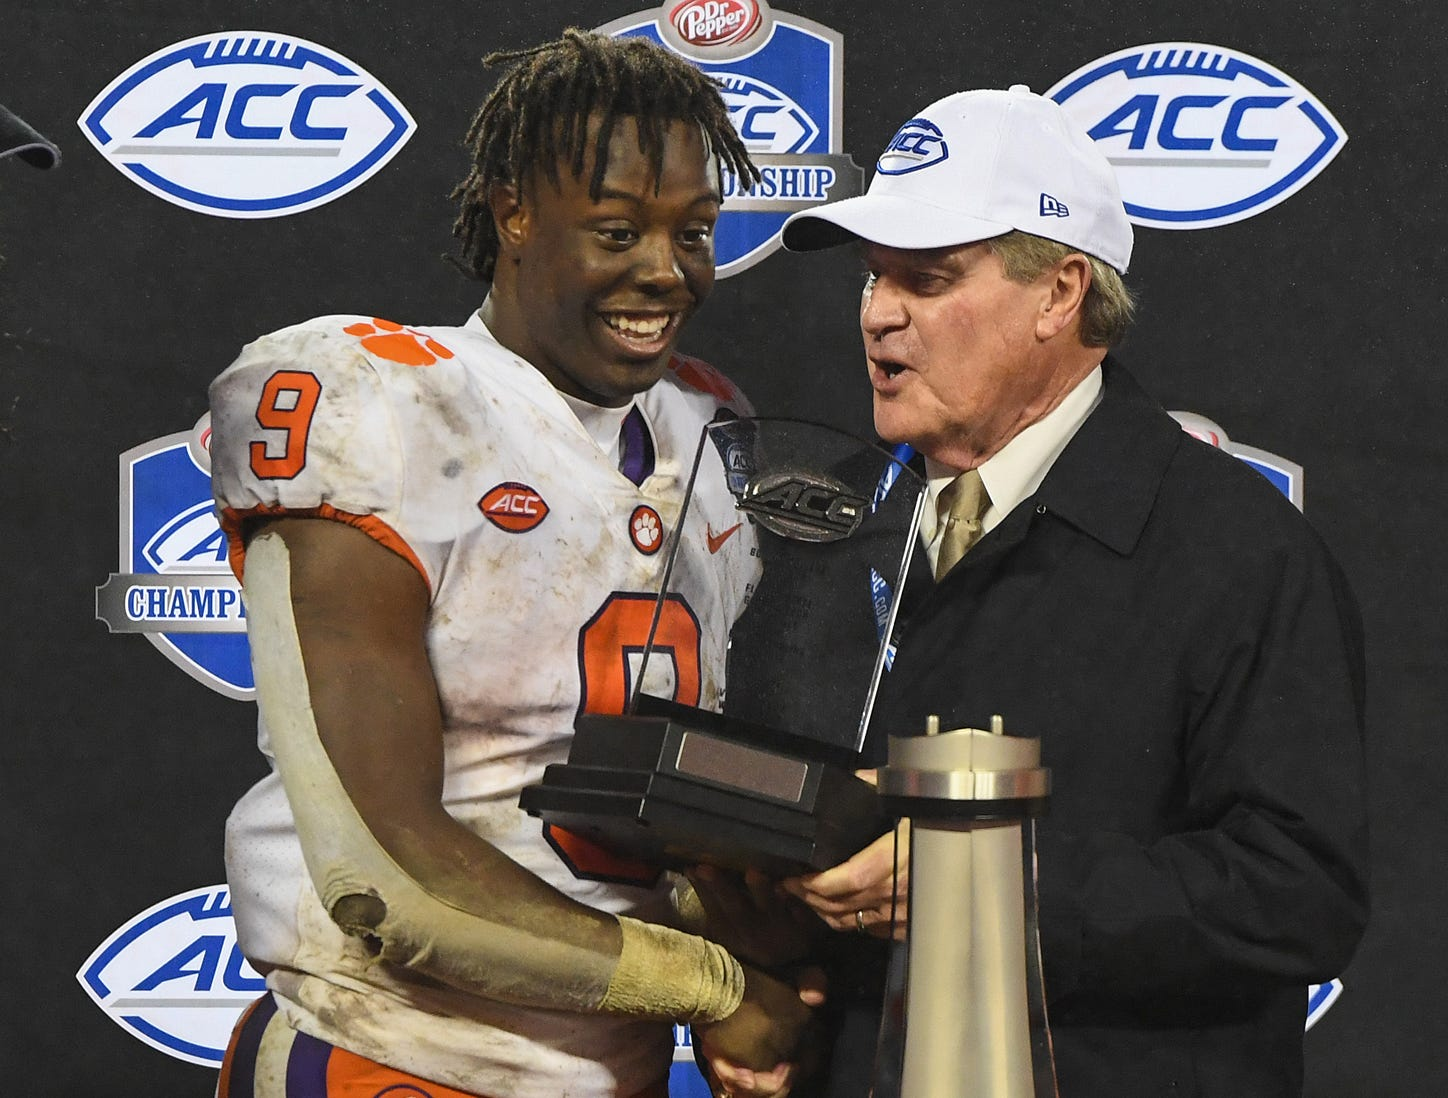 ACC Commissioner John  Swofford presents Clemson running back Travis Etienne (9) the Player of the Game trophy after the Tigers 42-10 win over Pittsburgh in the Dr. Pepper ACC Championship at Bank of America Stadium in Charlotte, N.C. Saturday, December 1, 2018.